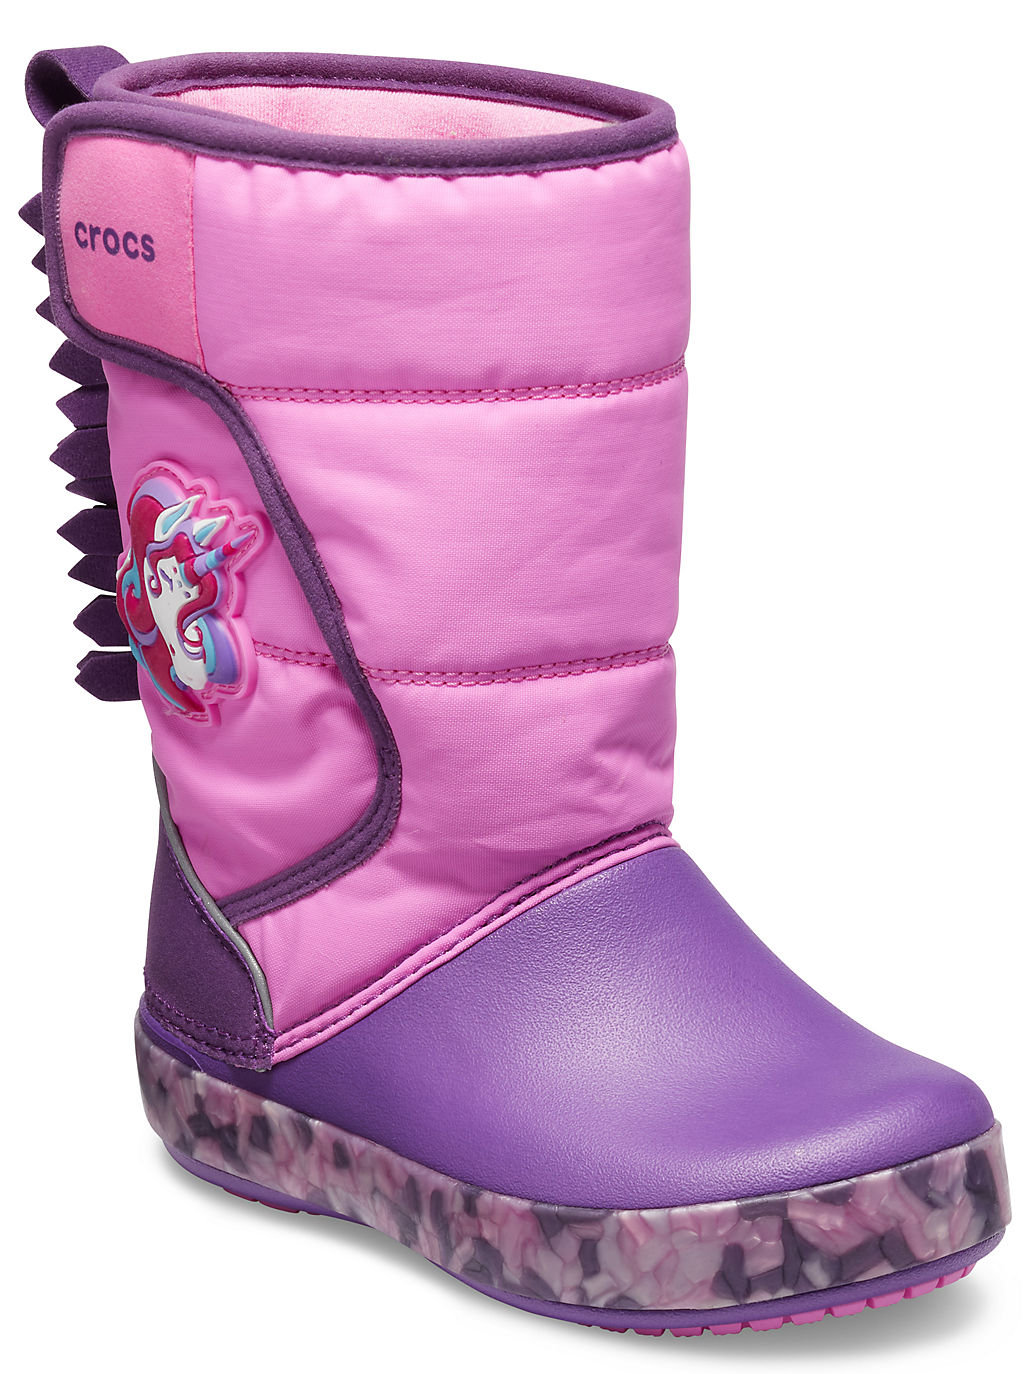 Купить Kids' Crocs Fun Lab Unicorn Lights Boot, 6U9